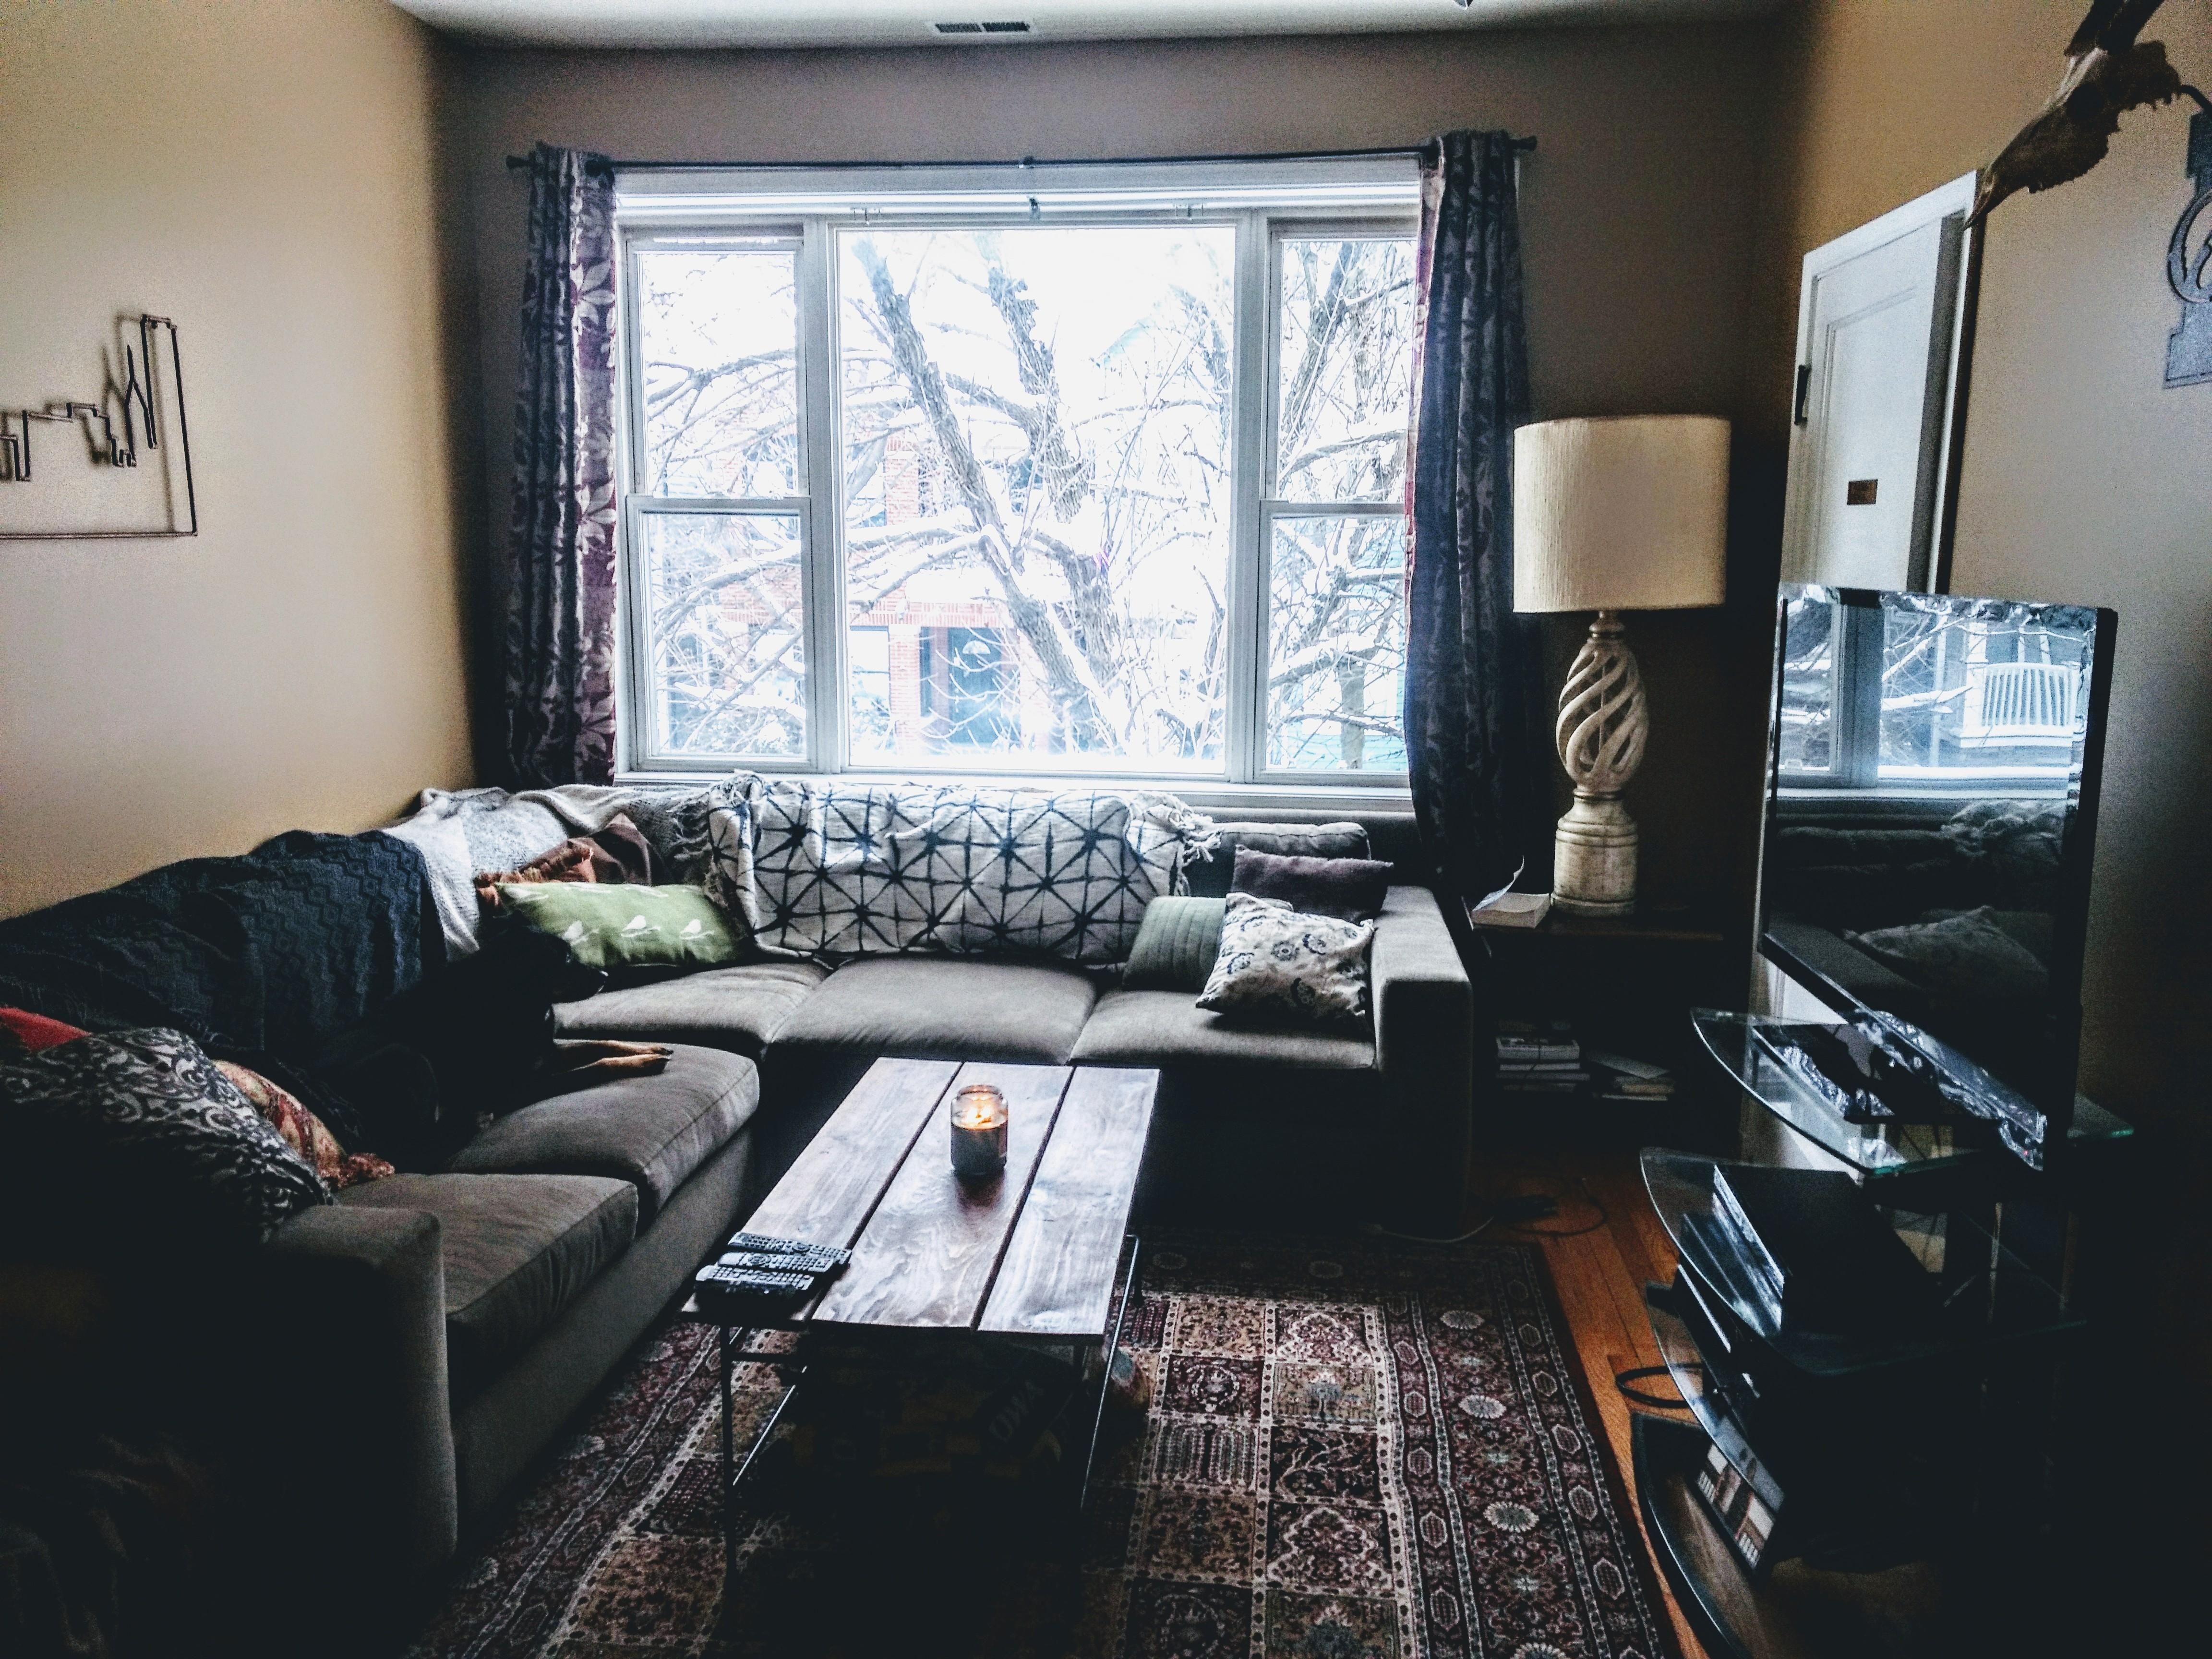 Reddit The Front Page Of The Internet Home Interior Design Living Room Decor Cozy Place